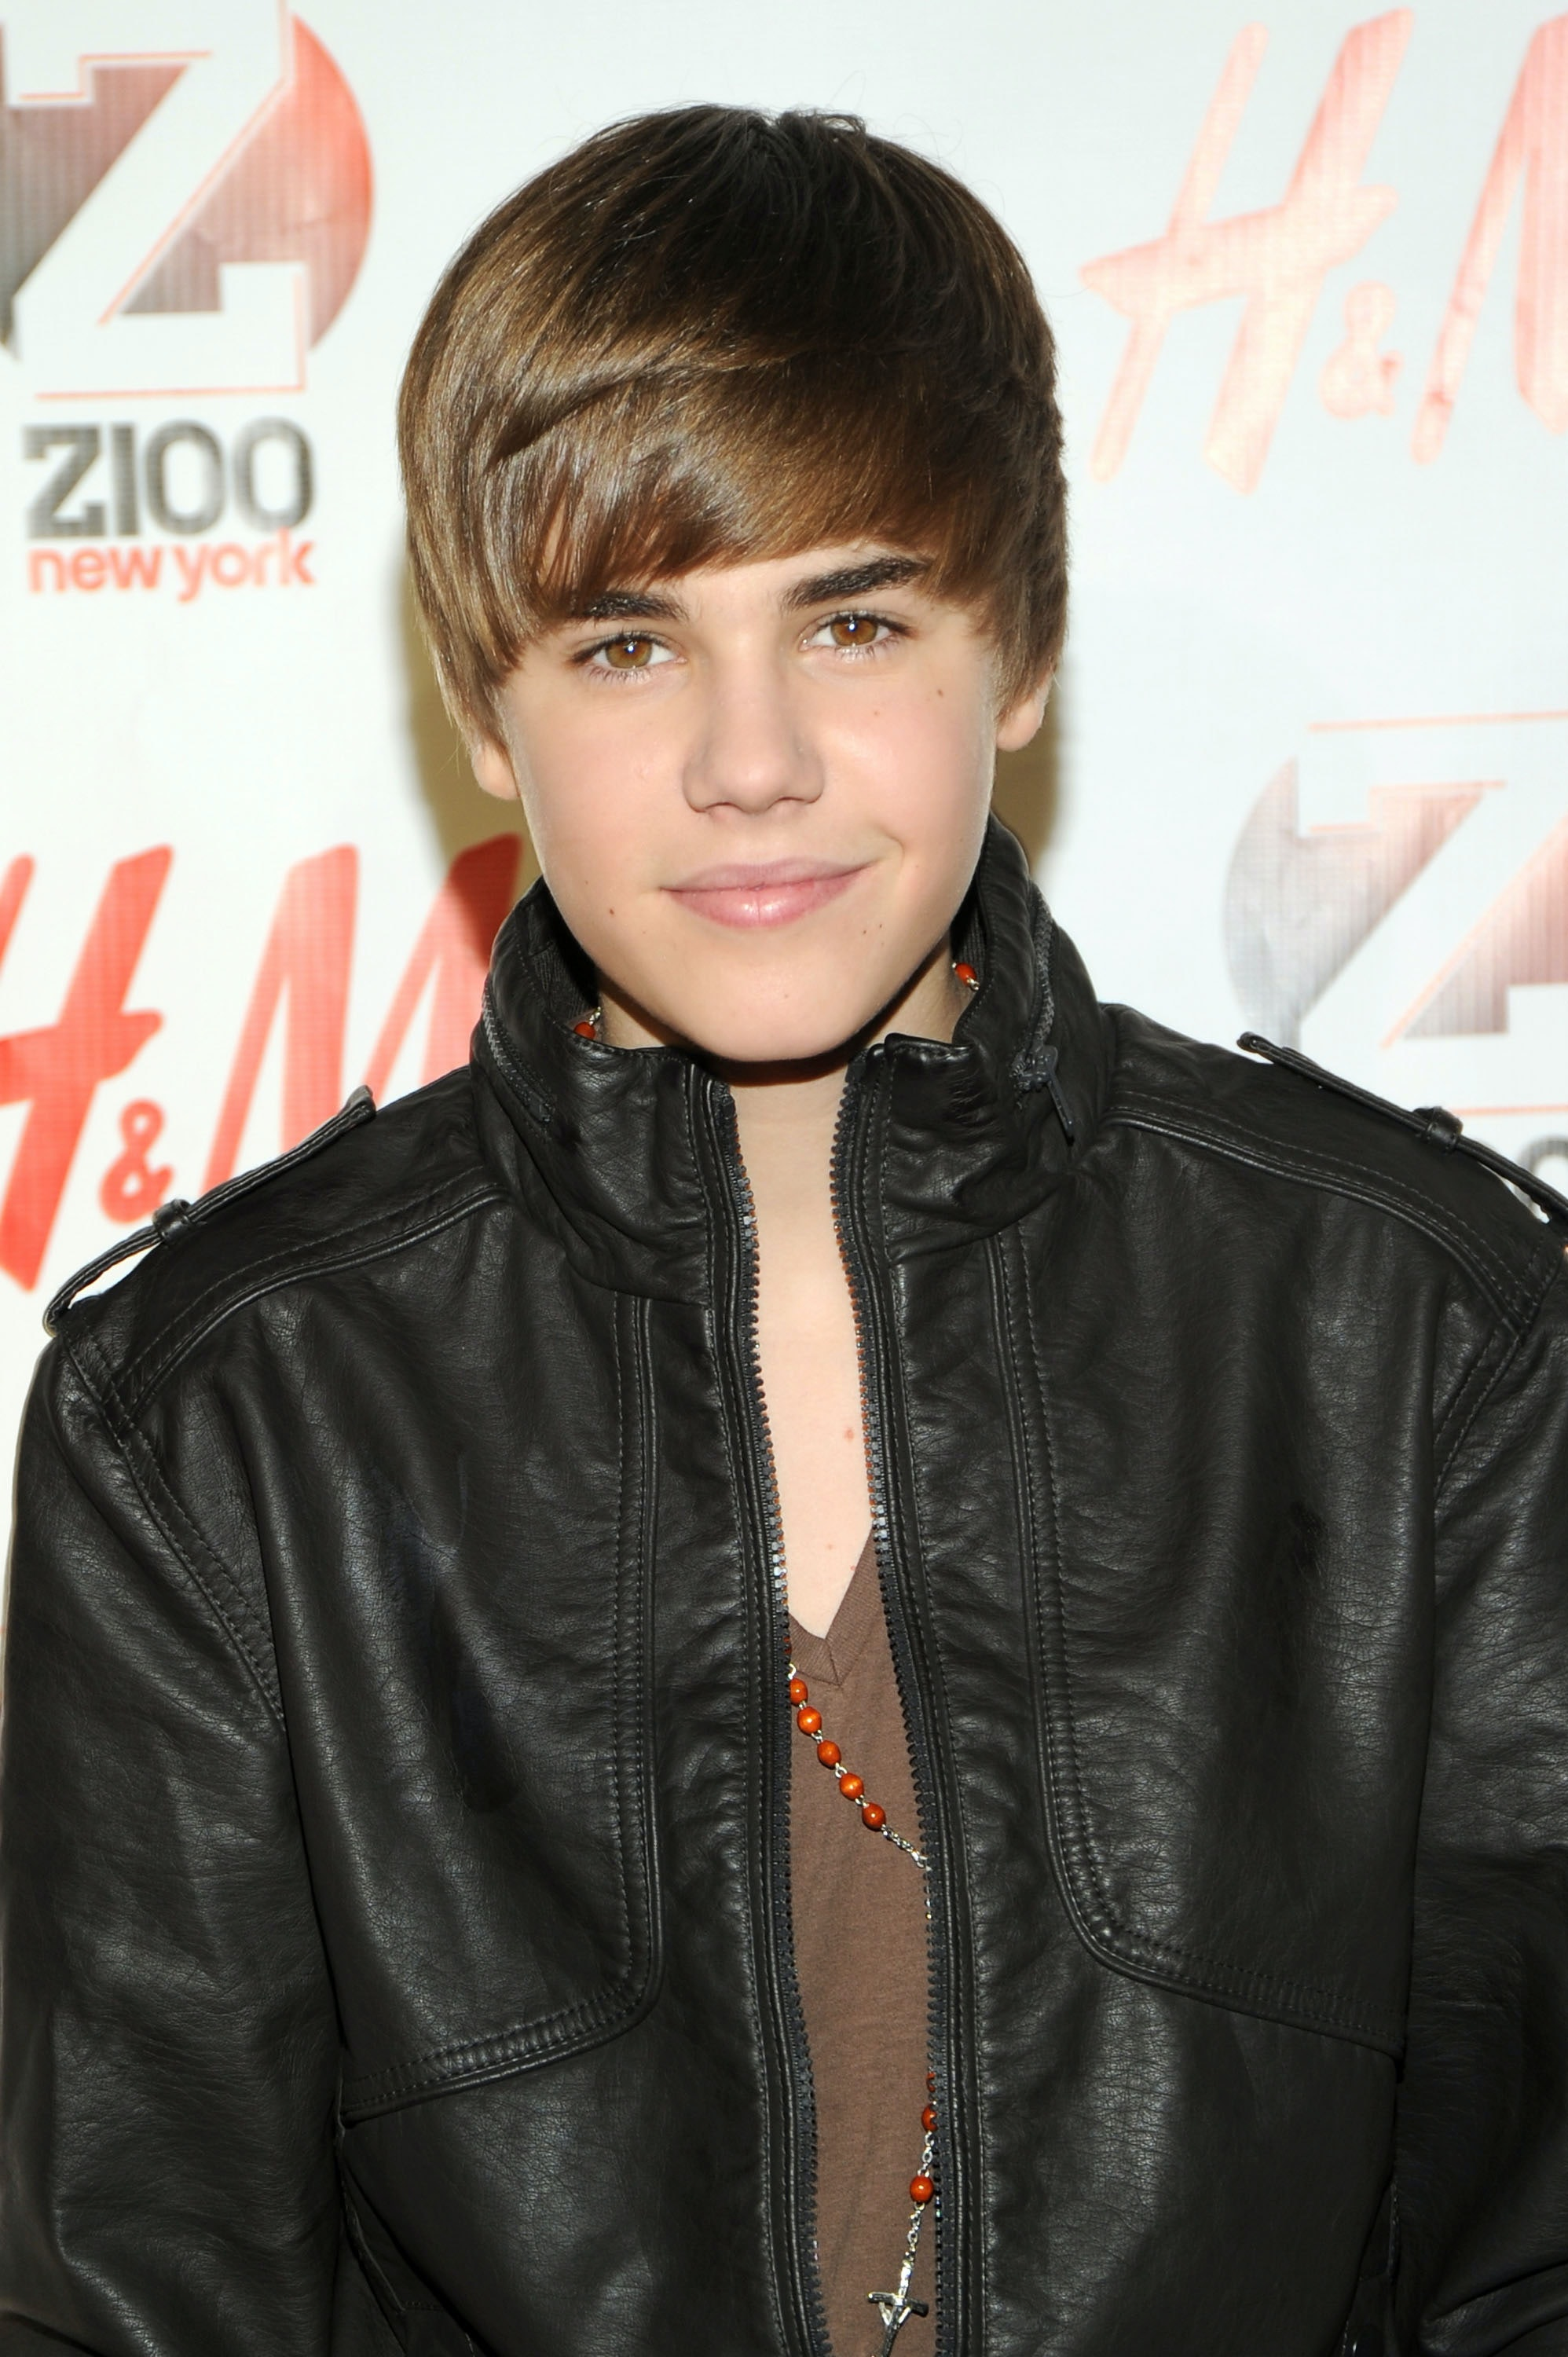 Justin Beiber Hair Style by wearticles.com